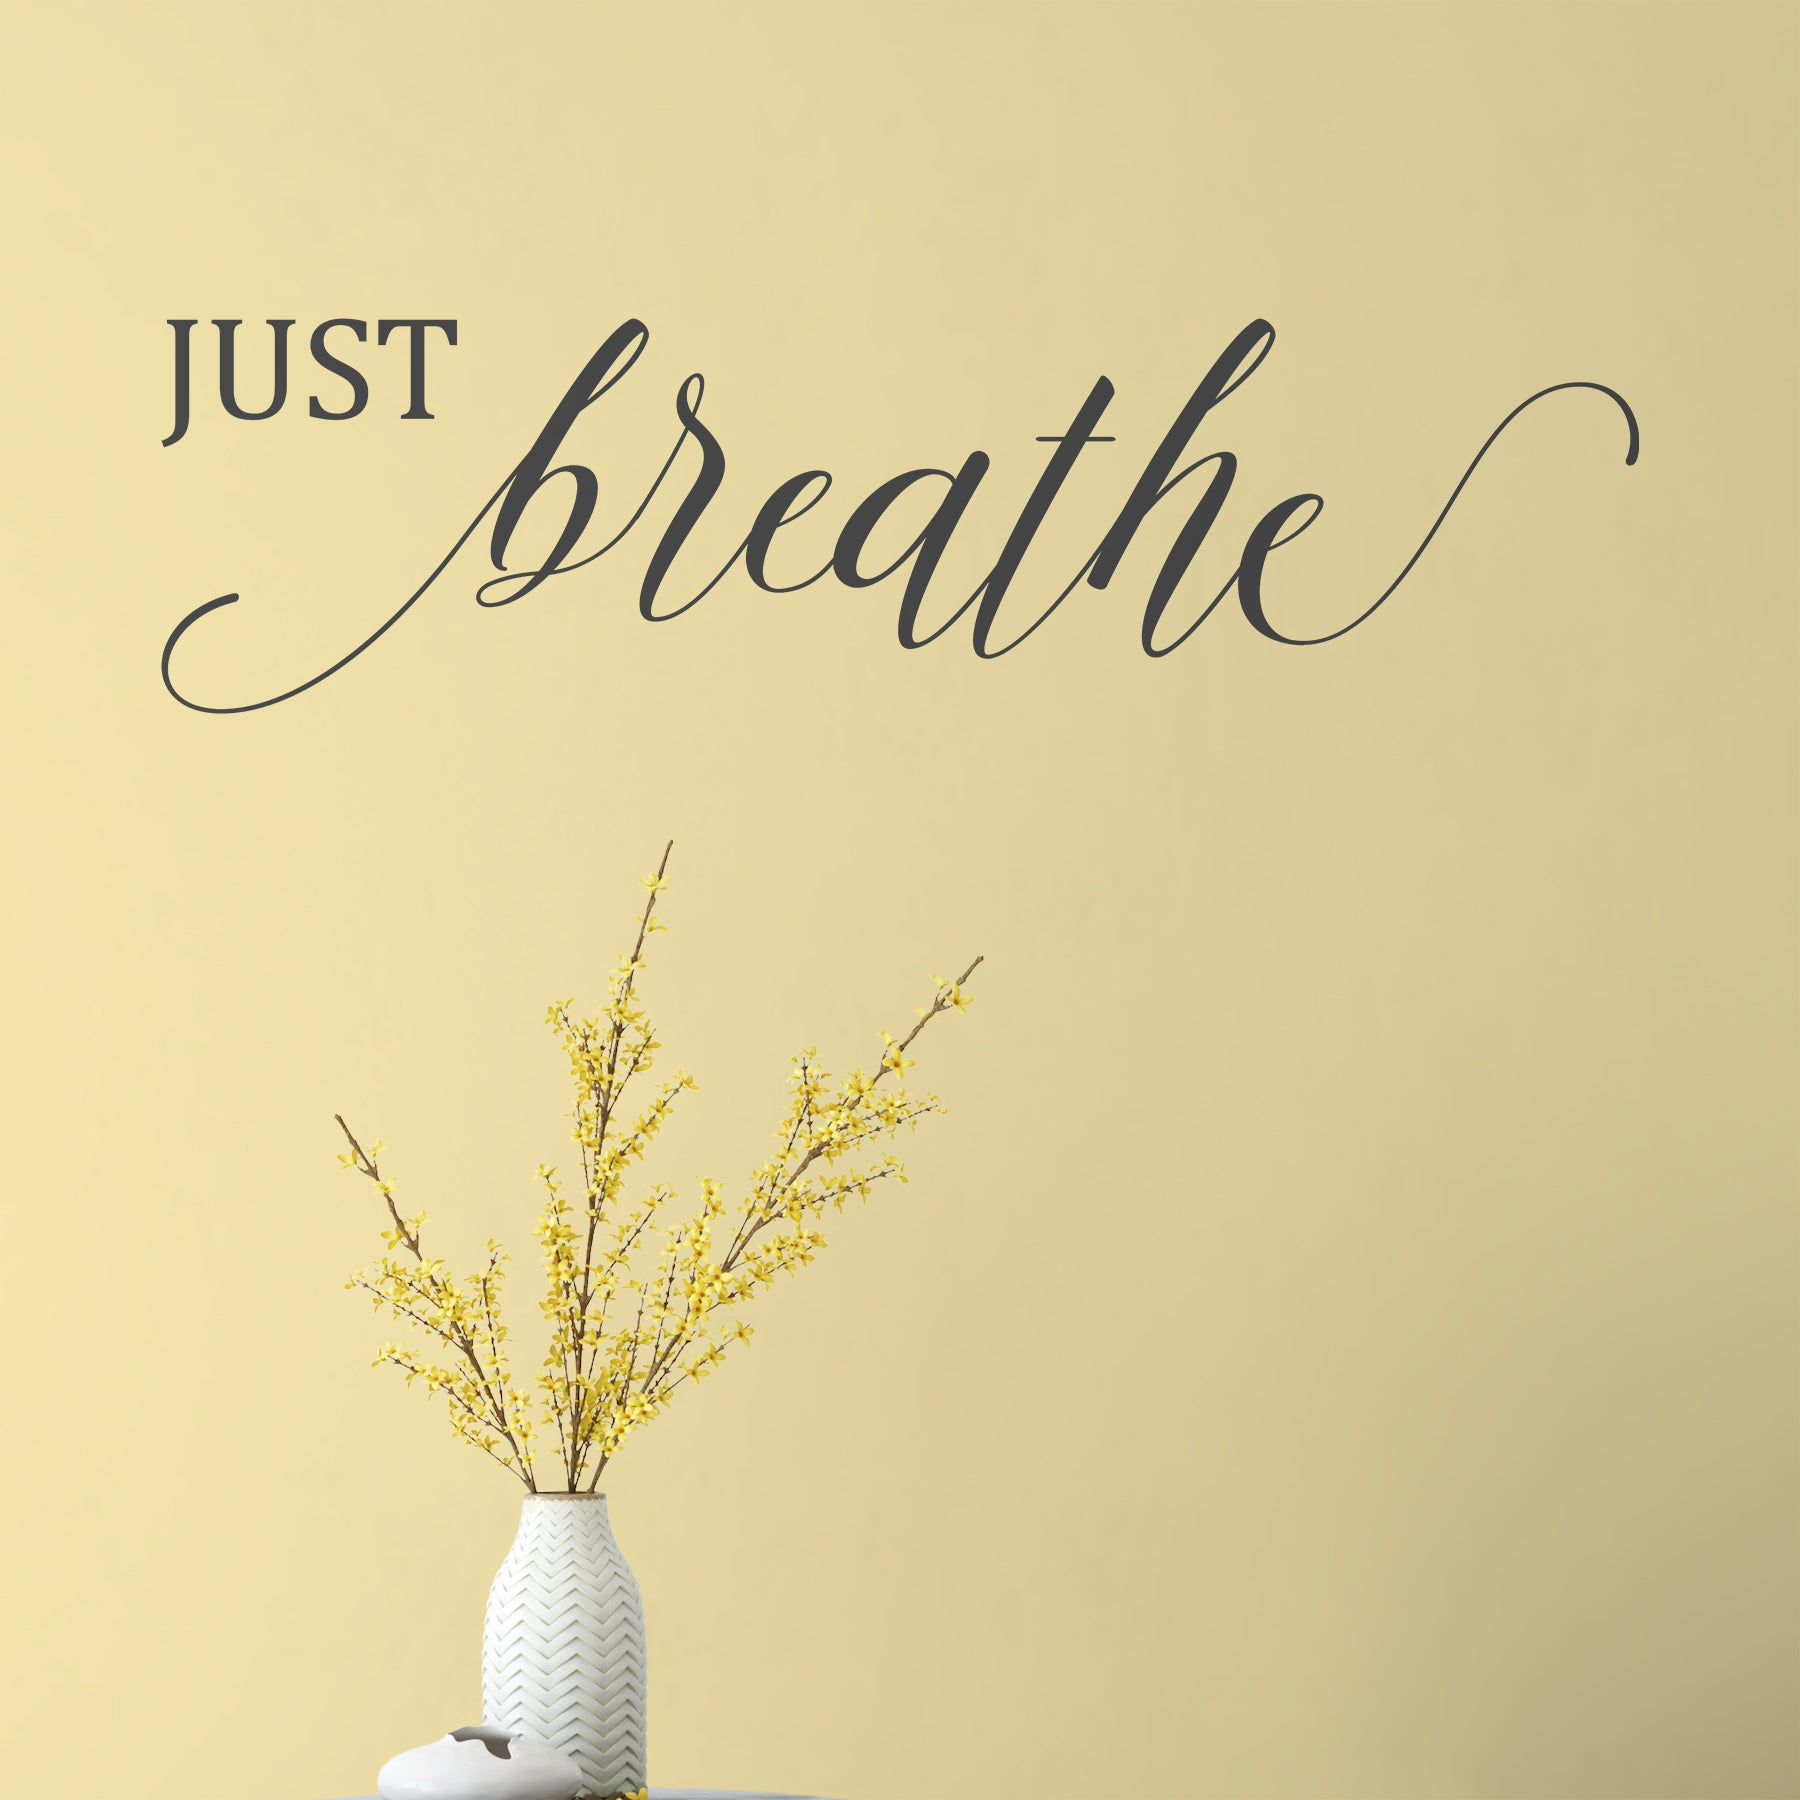 Just Breathe Vinyl Wall Quote Decal – Dee-cal Frenzy Wall Decor